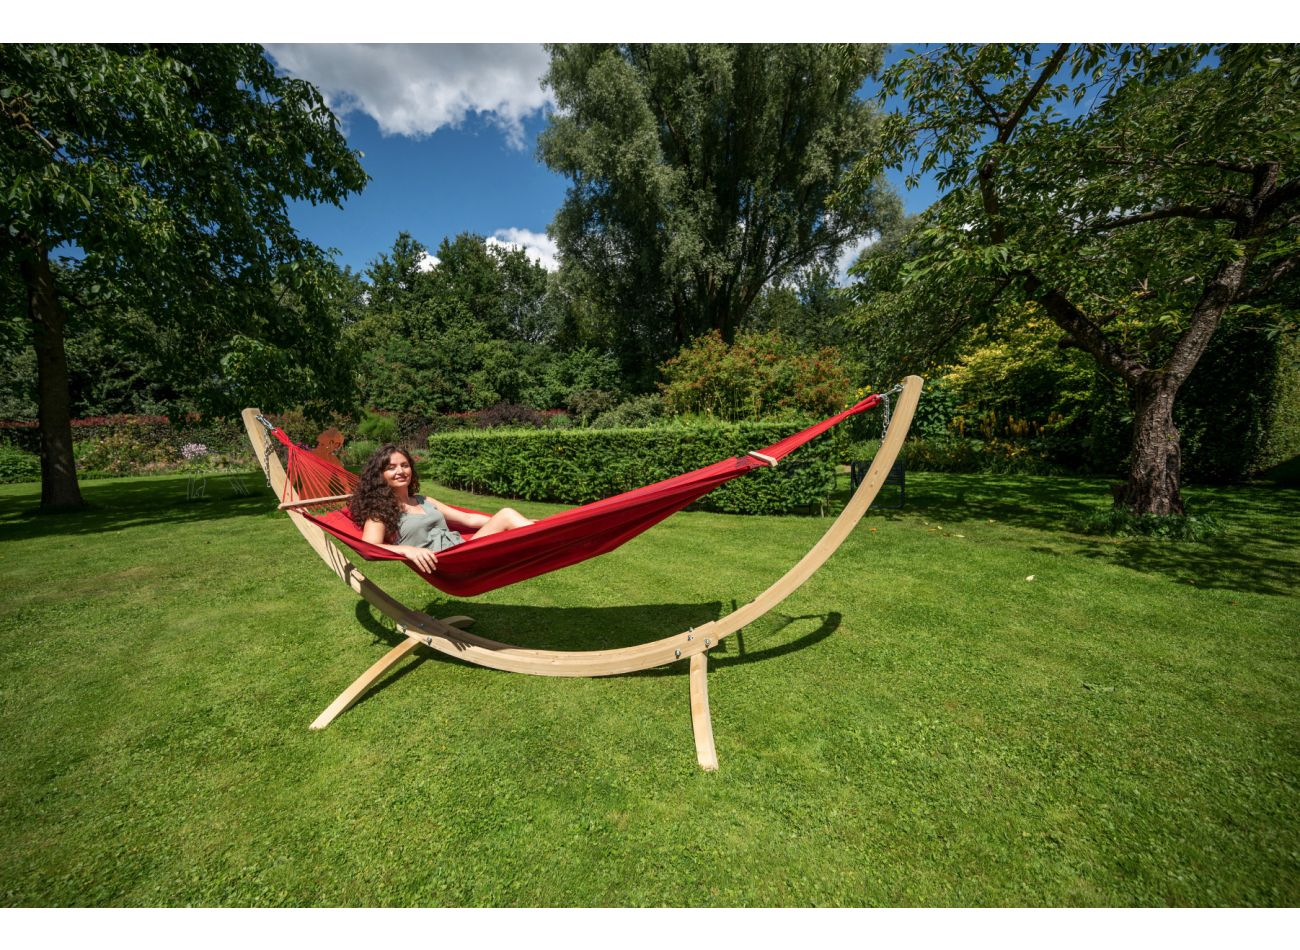 Hängematte mit Gestell 1 Person Wood & Relax Red